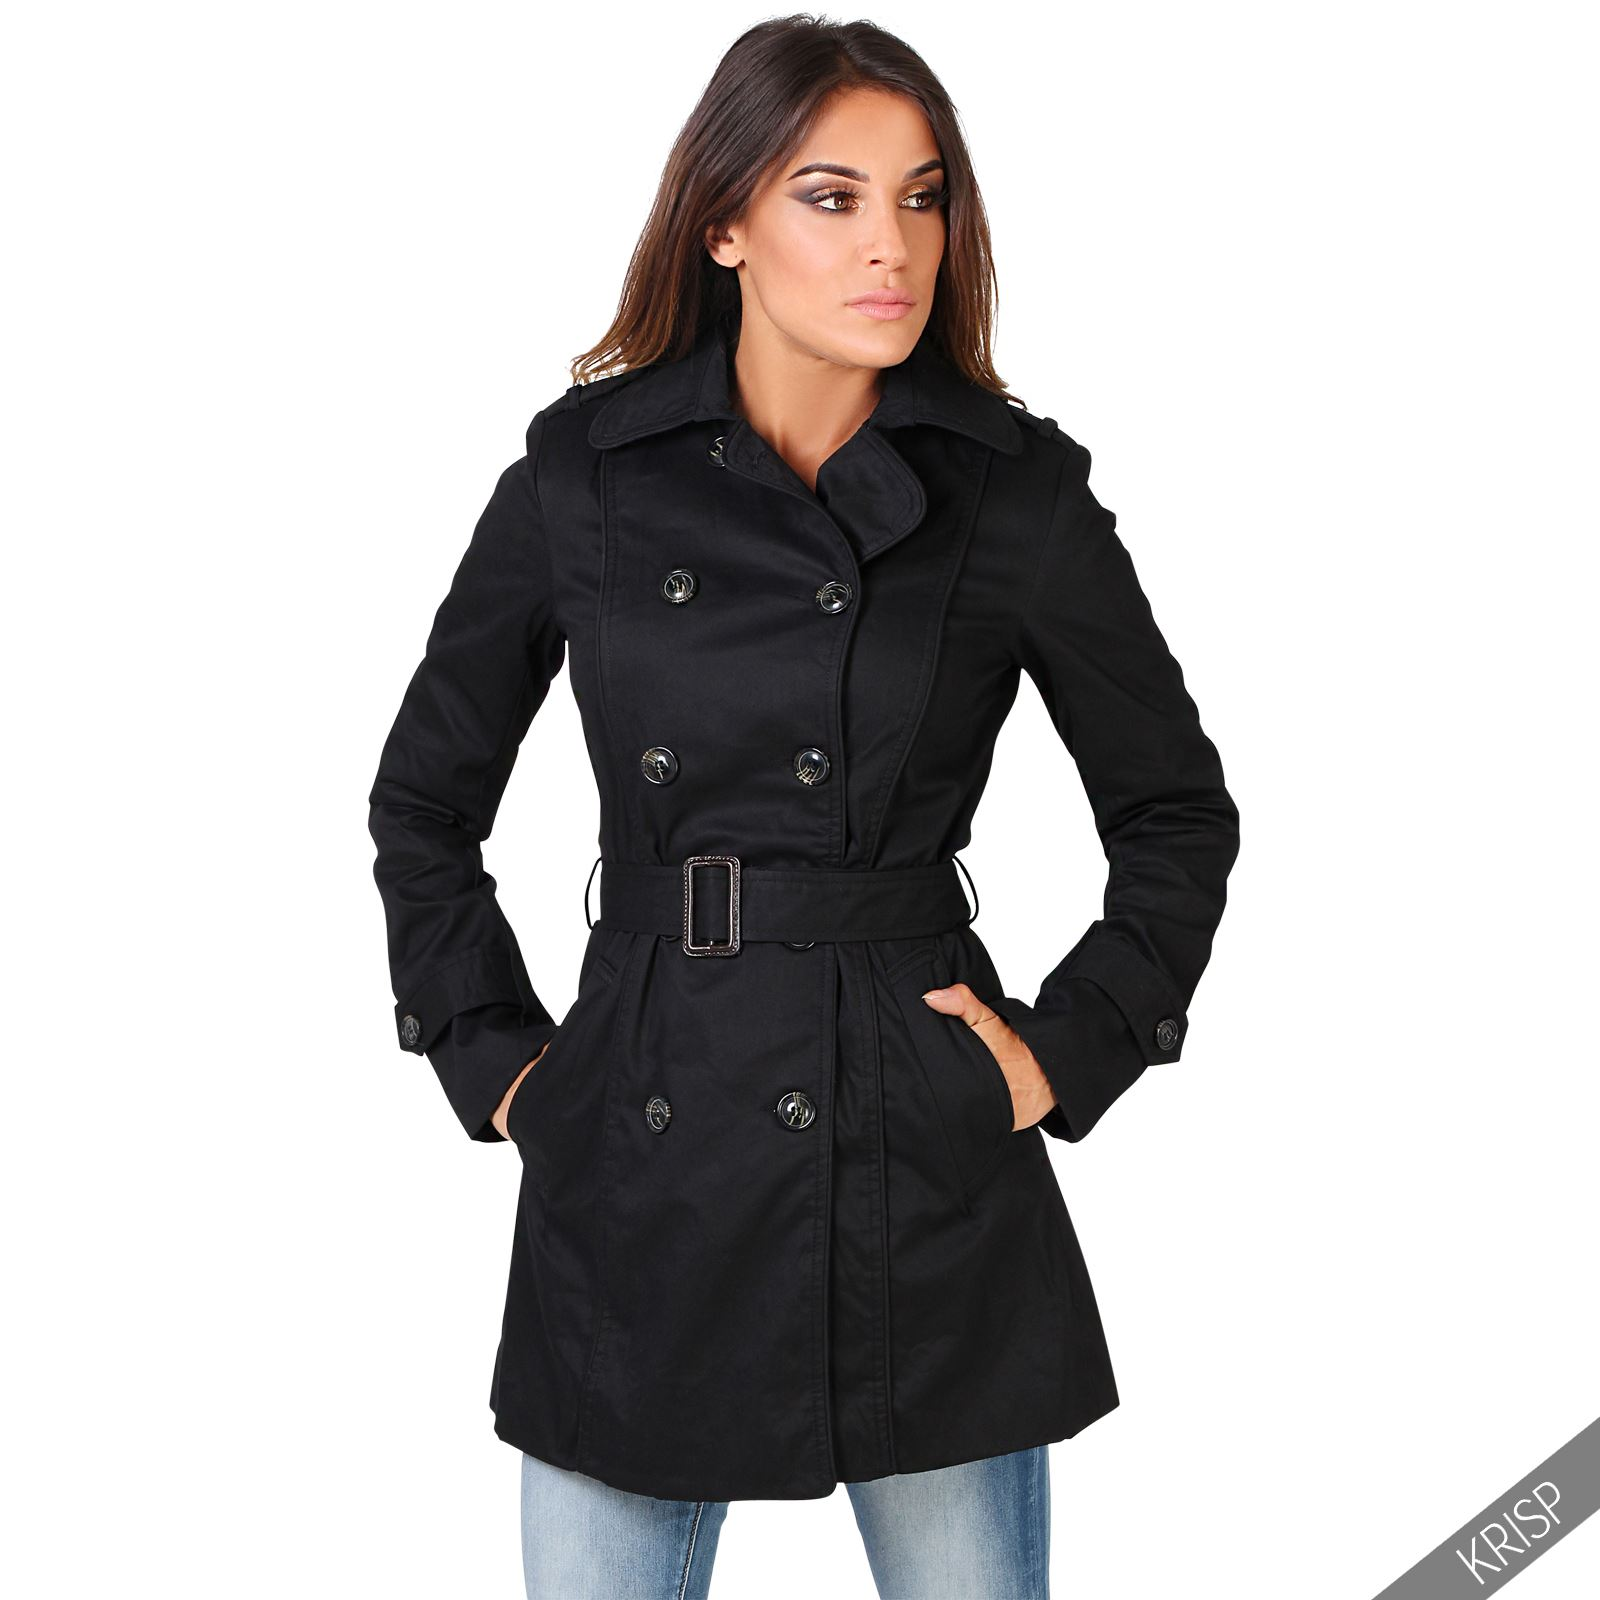 damen zweireihiger kurzmantel trenchcoat parka leichter bergangsmantel classic ebay. Black Bedroom Furniture Sets. Home Design Ideas